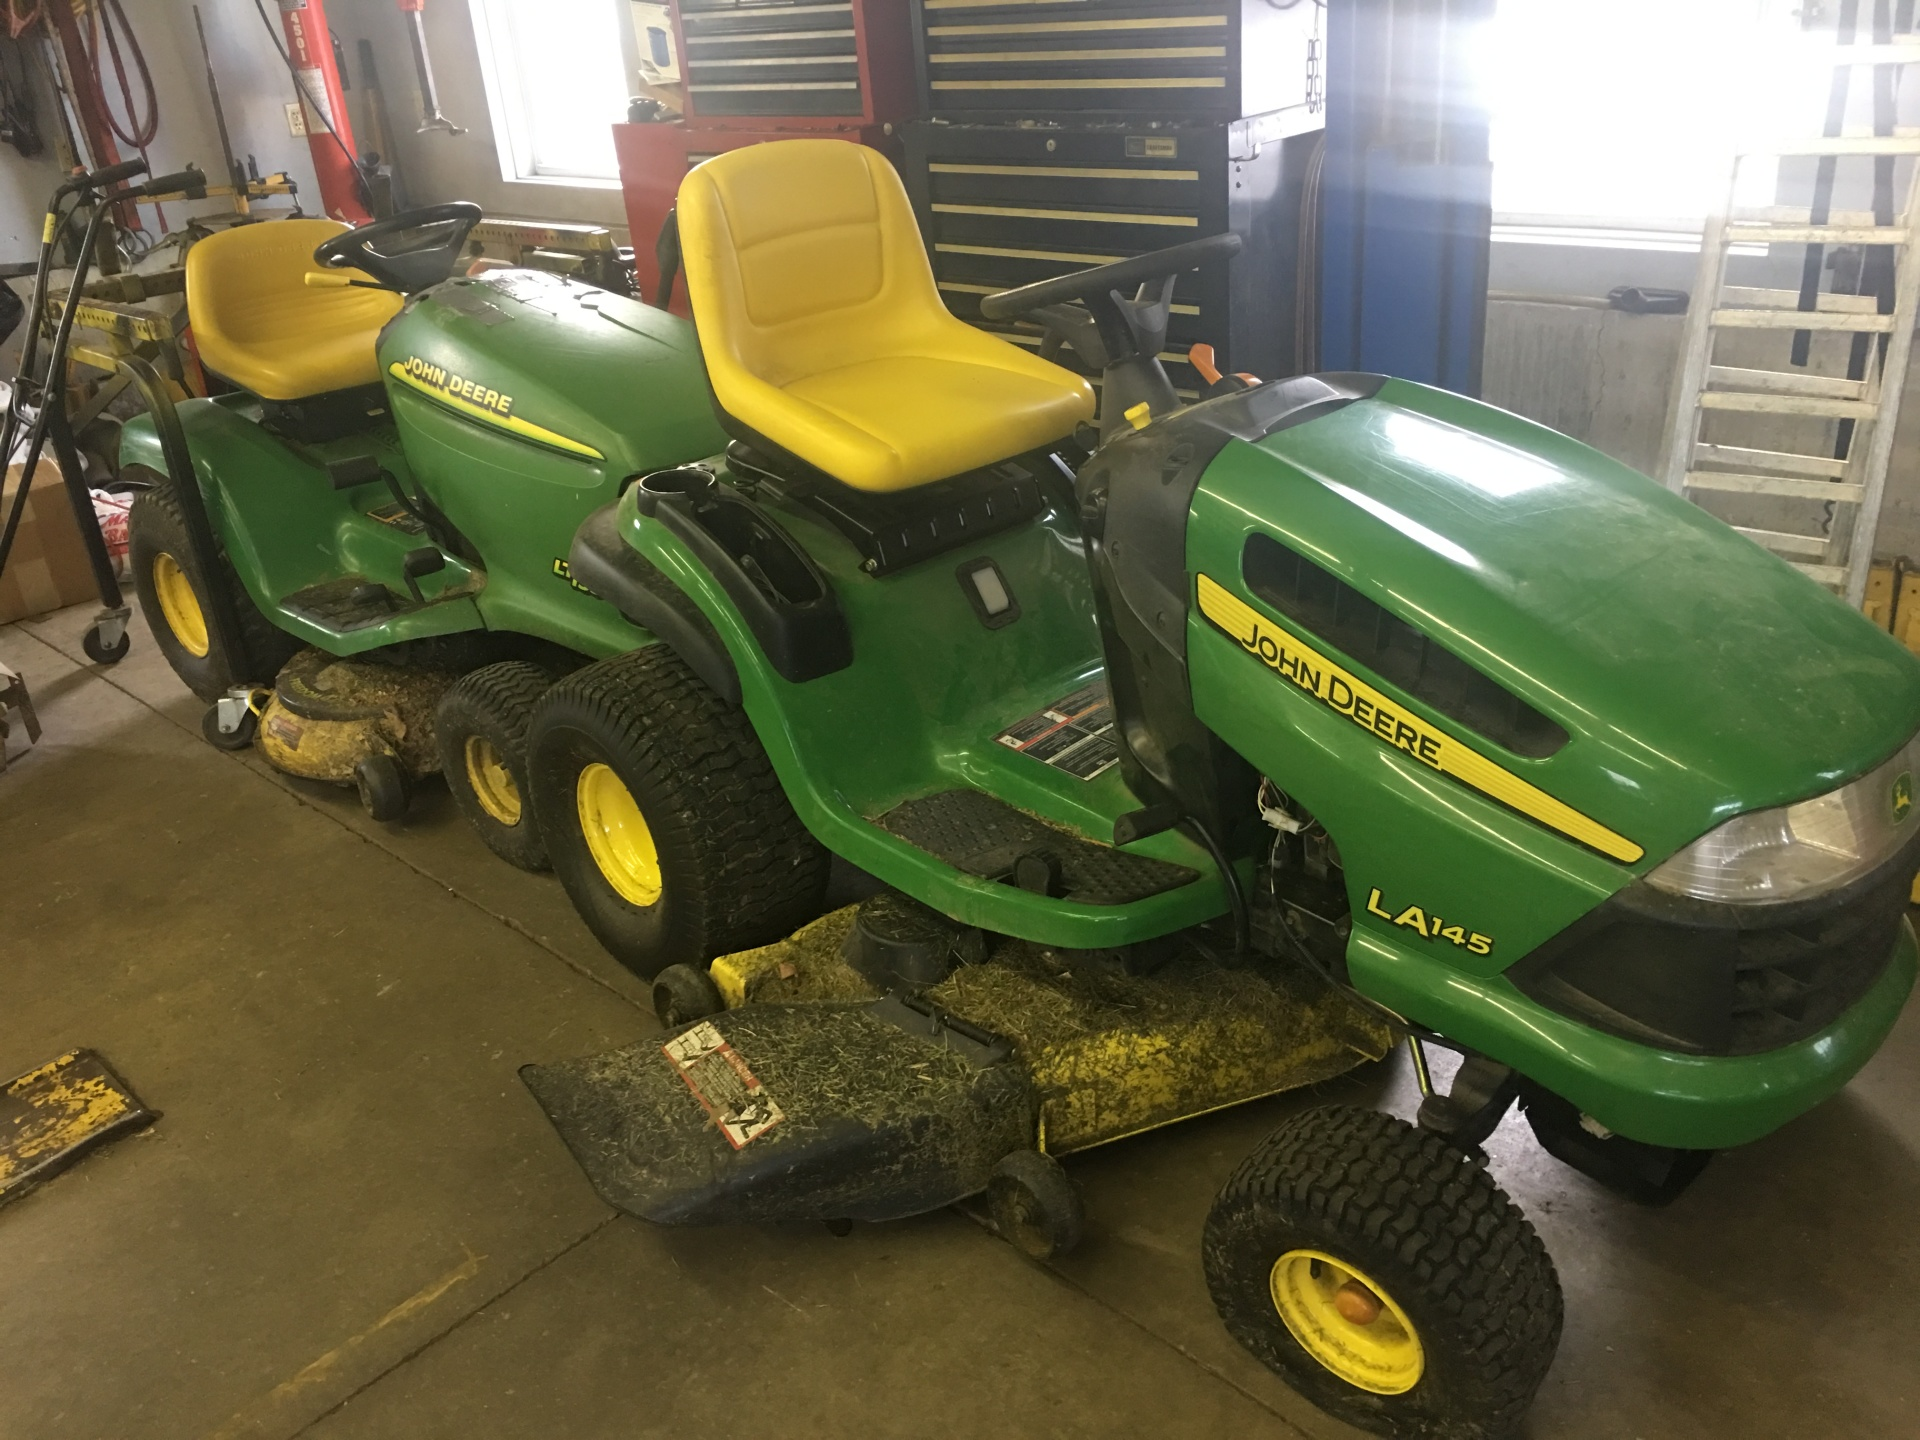 small engine repair dover nh  rochester nh, somerworth nh, snowblower, lawn mower, generator, small engine